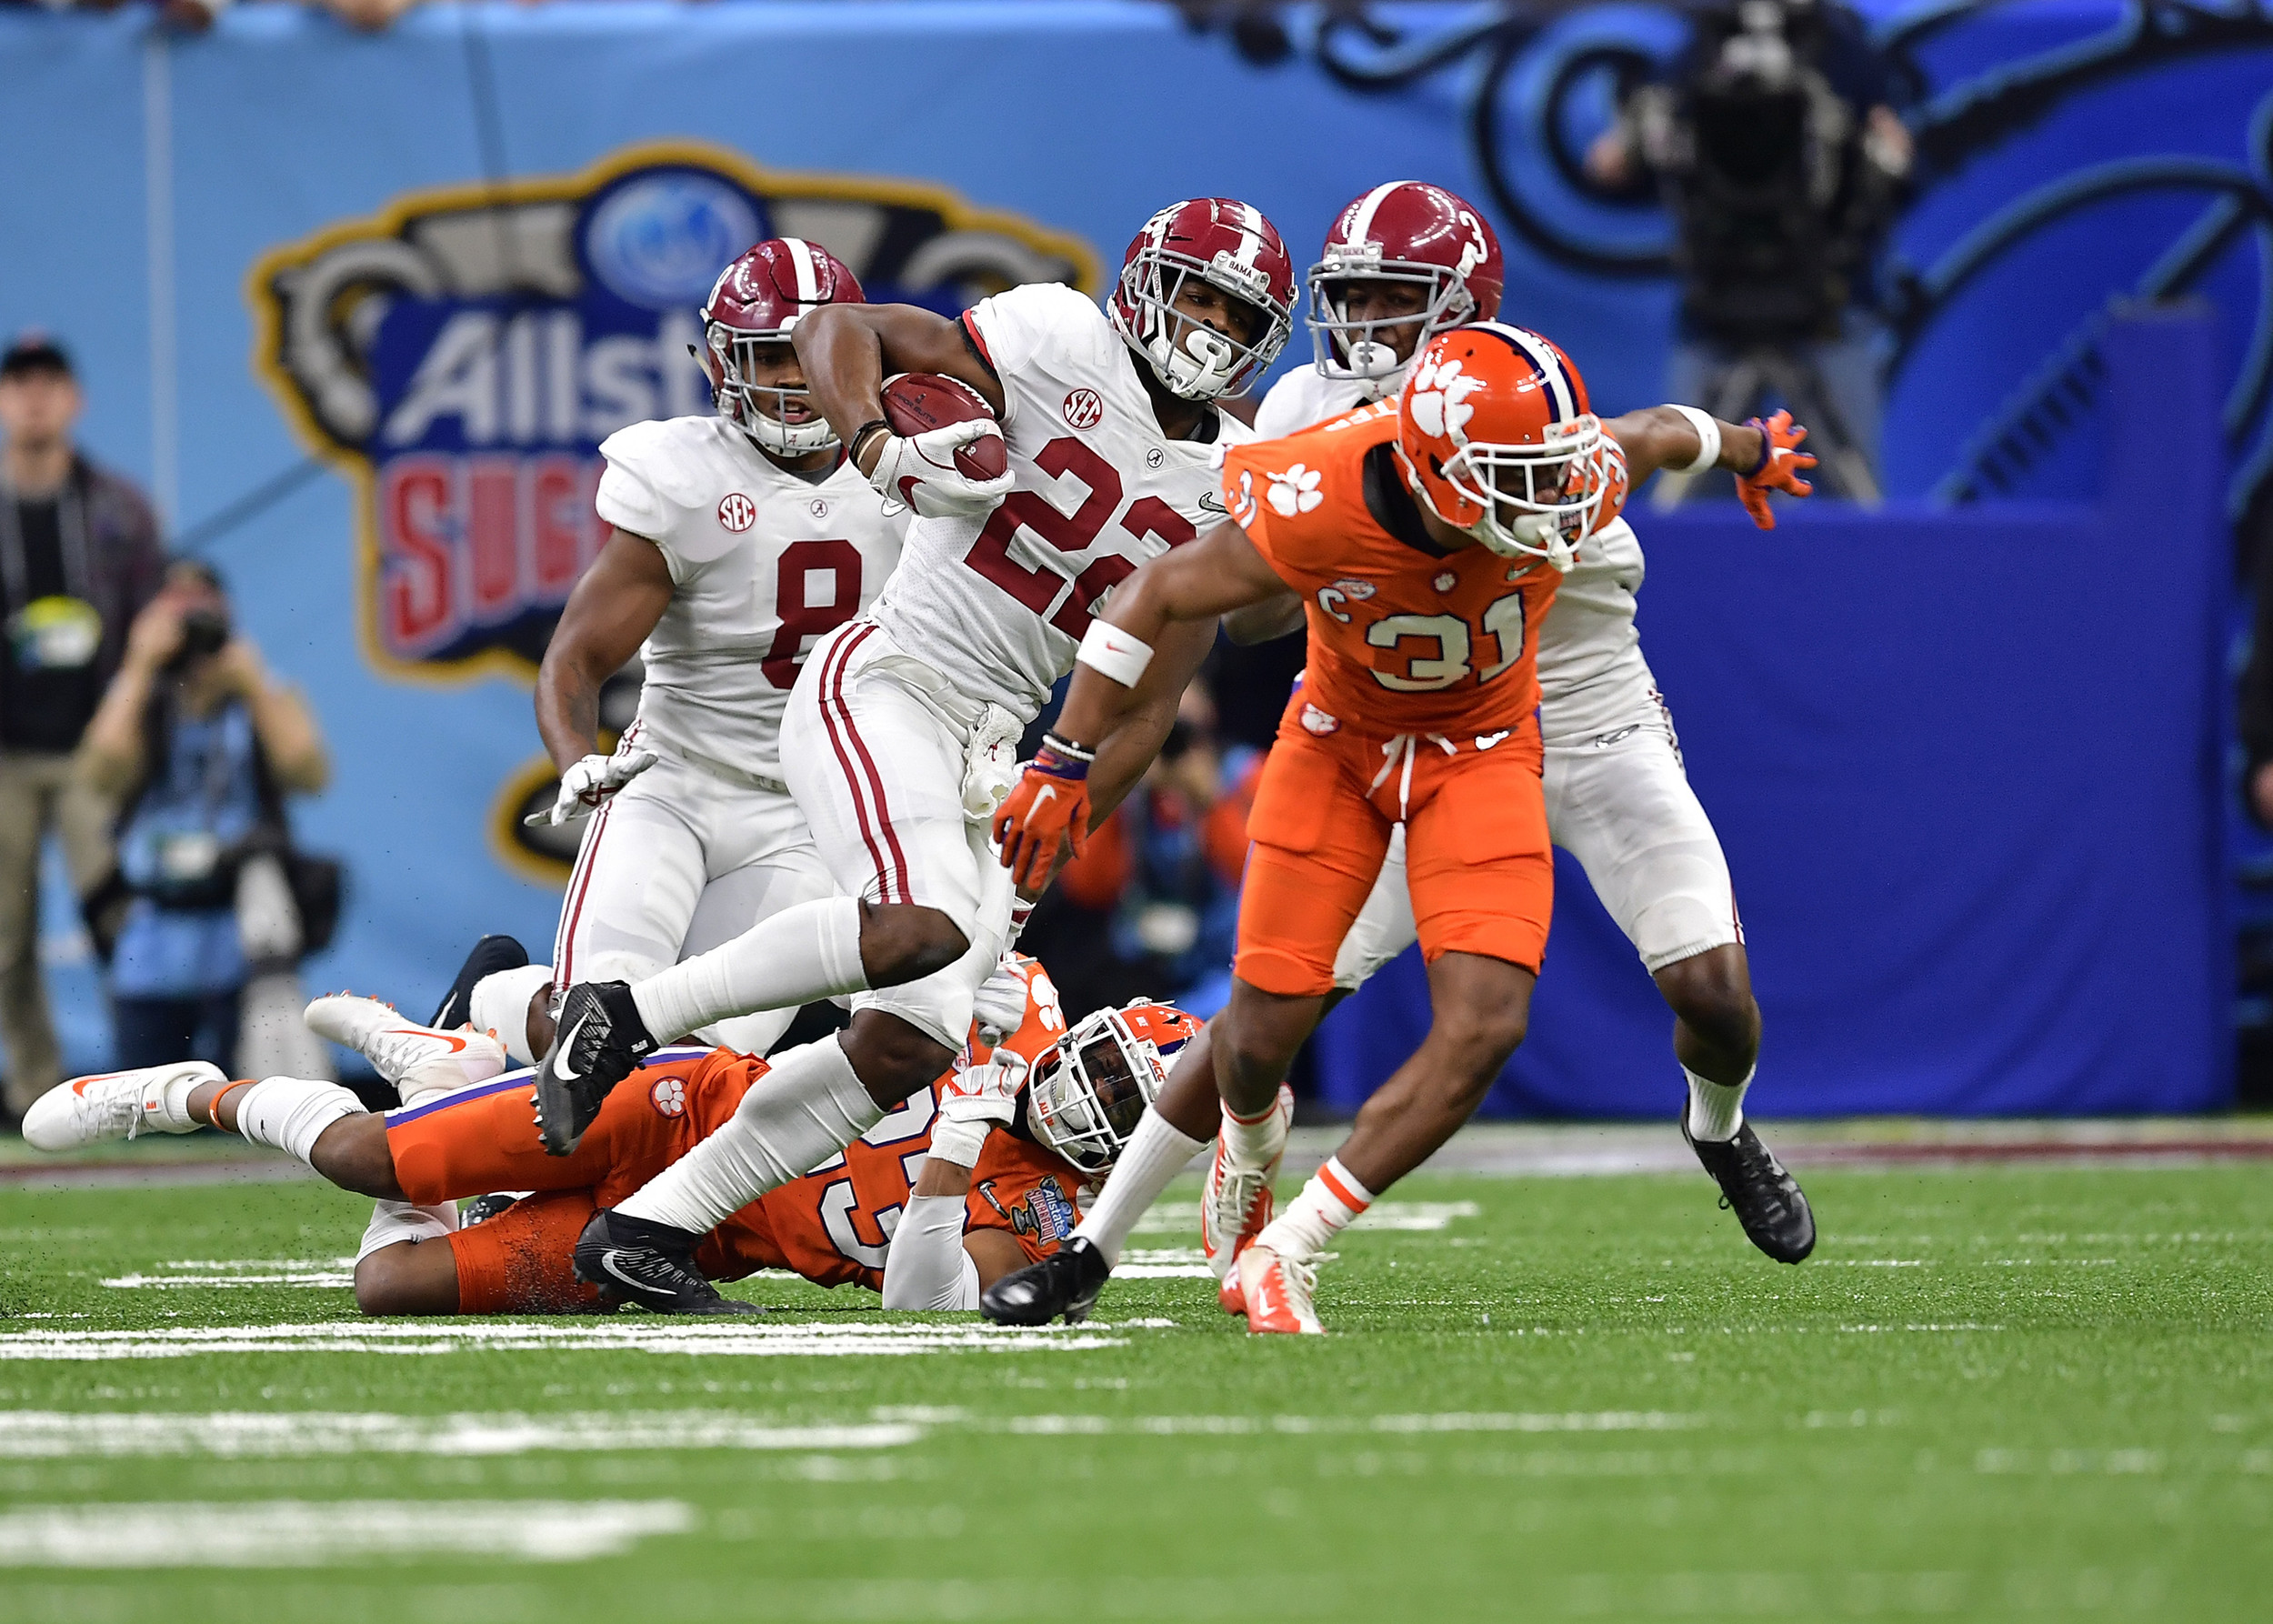 Alabama Crimson Tide running back Najee Harris (22) with a carry in the first half of the 2018 AllState Sugar Bowl on Jan. 1, 2018, at the Mercedes-Benz SuperDome in New Orleans, La. Alabama won the game 24-6. (Photo by Lee Walls)